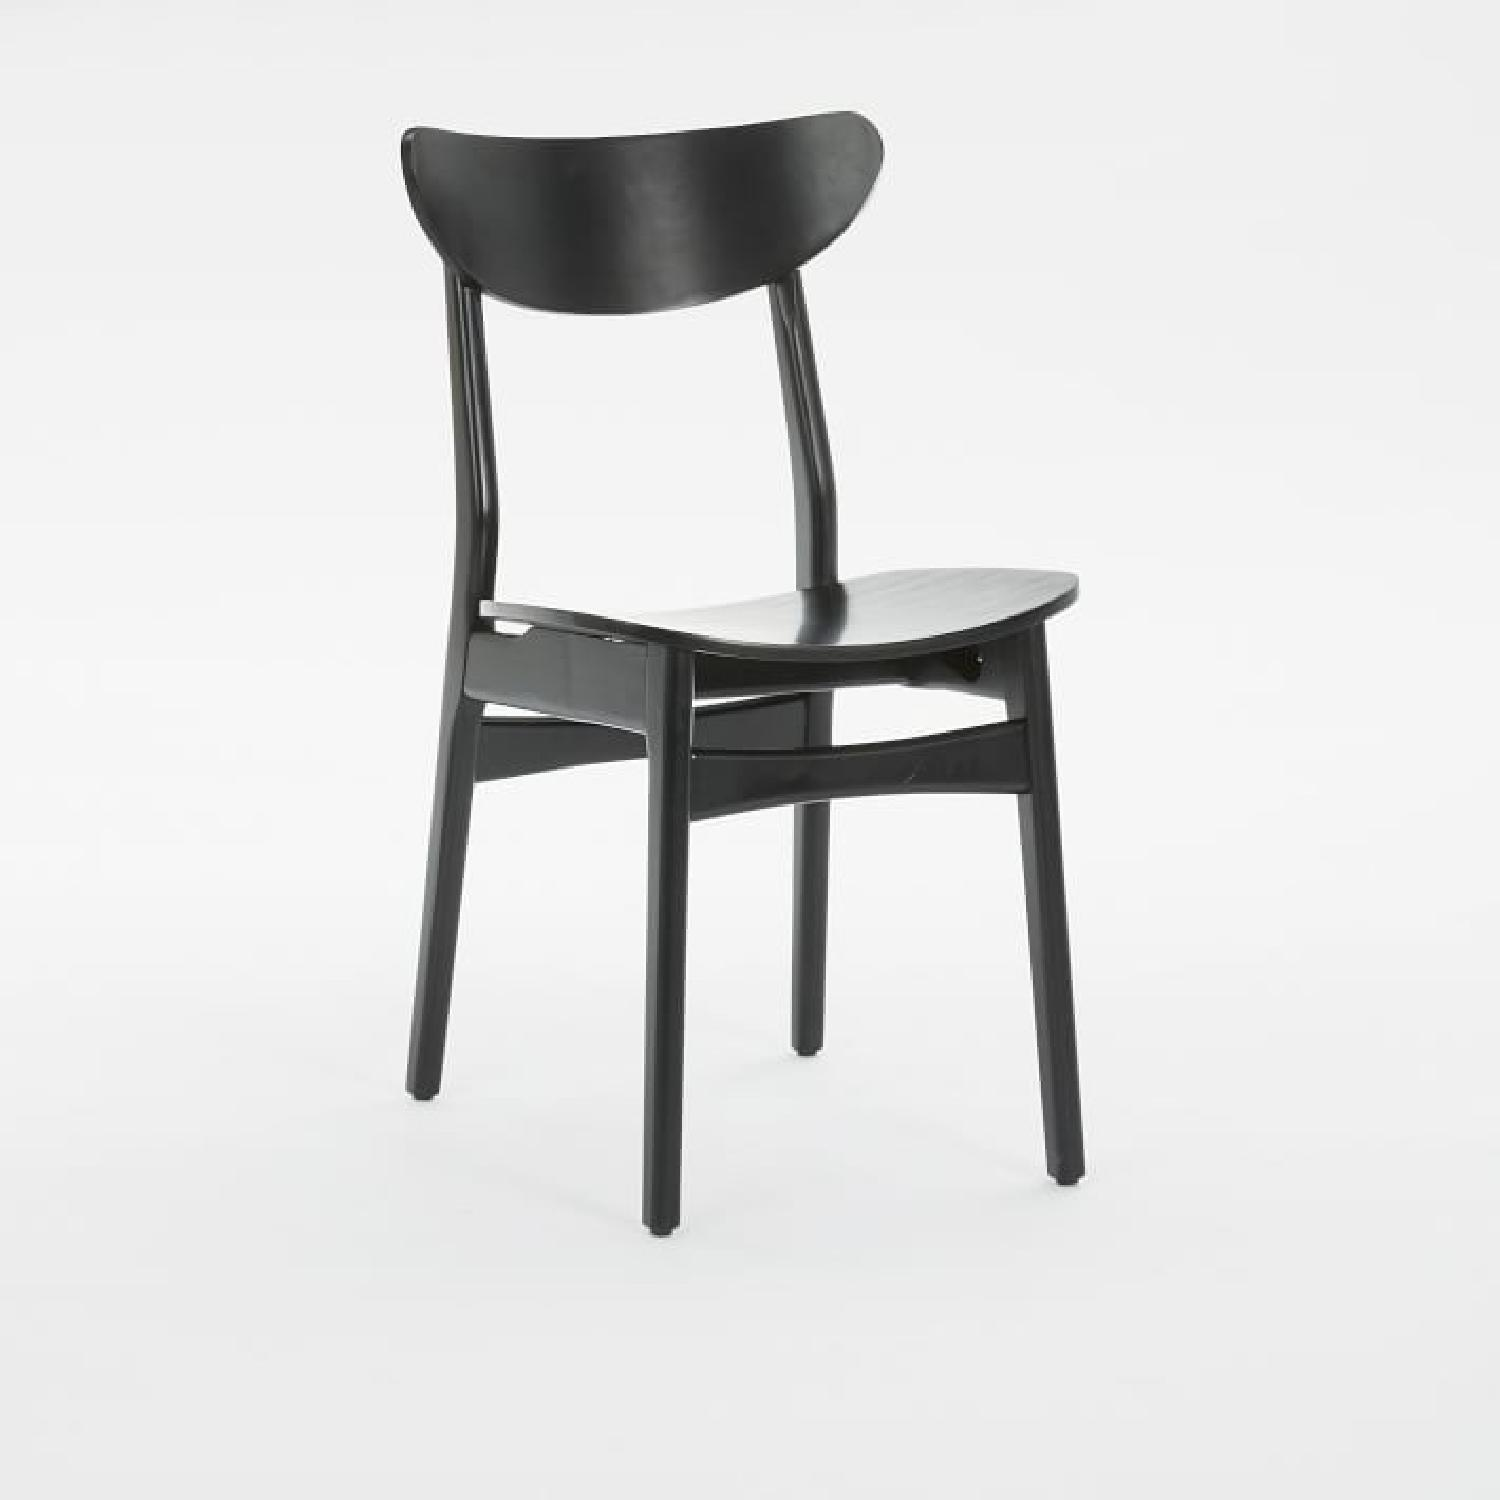 West Elm Classic Cafe Dining Chair in Black Lacquer - image-1